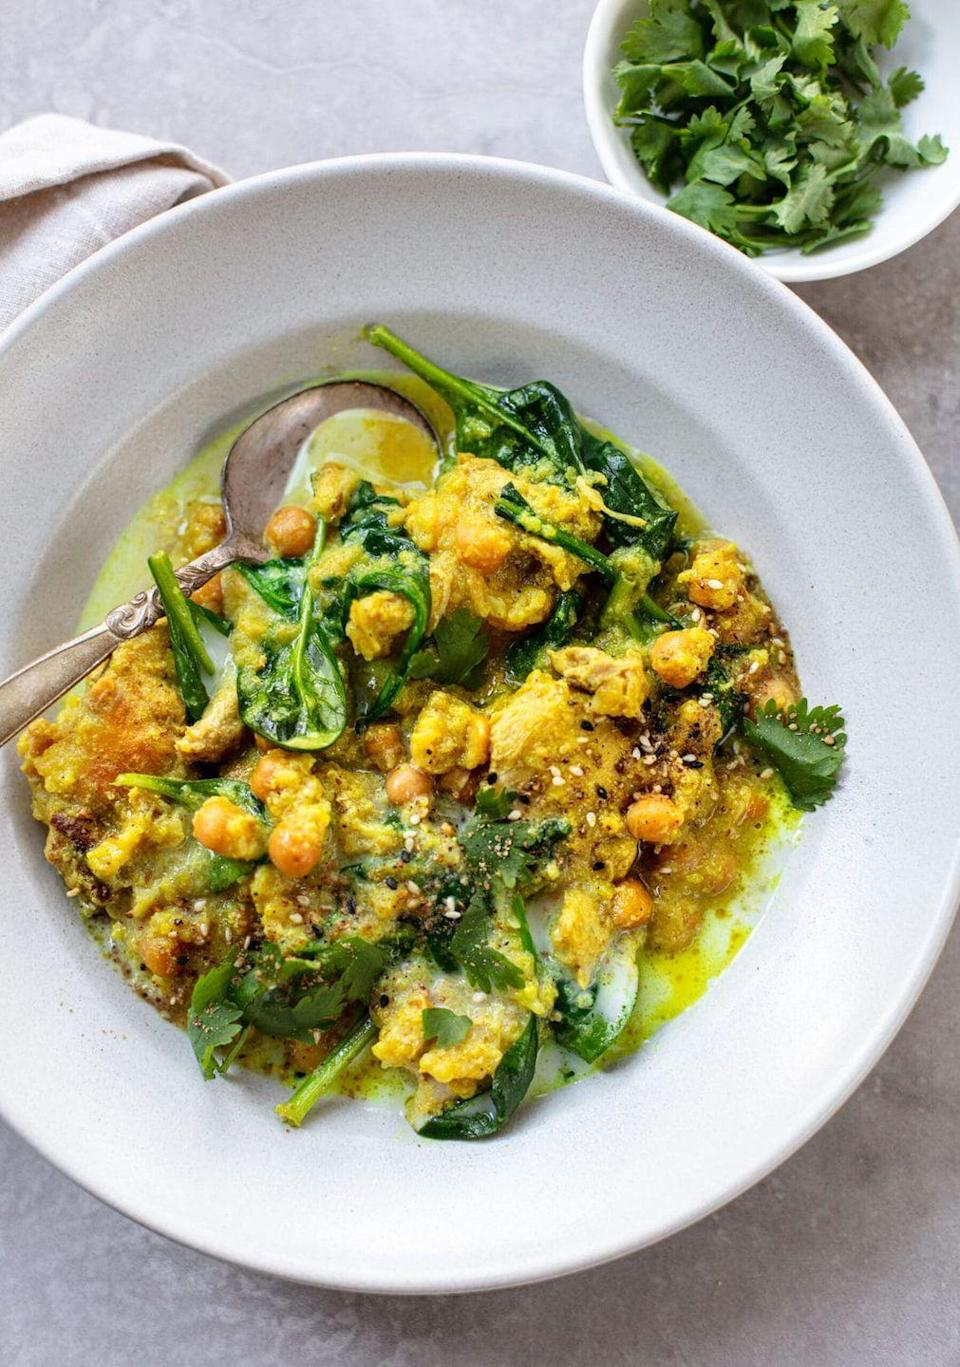 """<p>Get the <a href=""""https://familystylefood.com/spiced-coconut-chicken-with-chickpeas-and-cauliflower-slow-cooker-or-instant-pot/"""" rel=""""nofollow noopener"""" target=""""_blank"""" data-ylk=""""slk:Curry Coconut Chicken with Cauliflower"""" class=""""link rapid-noclick-resp"""">Curry Coconut Chicken with Cauliflower</a> recipe.</p><p>Recipe from <a href=""""https://familystylefood.com/"""" rel=""""nofollow noopener"""" target=""""_blank"""" data-ylk=""""slk:Family Style Food"""" class=""""link rapid-noclick-resp"""">Family Style Food</a>. </p>"""